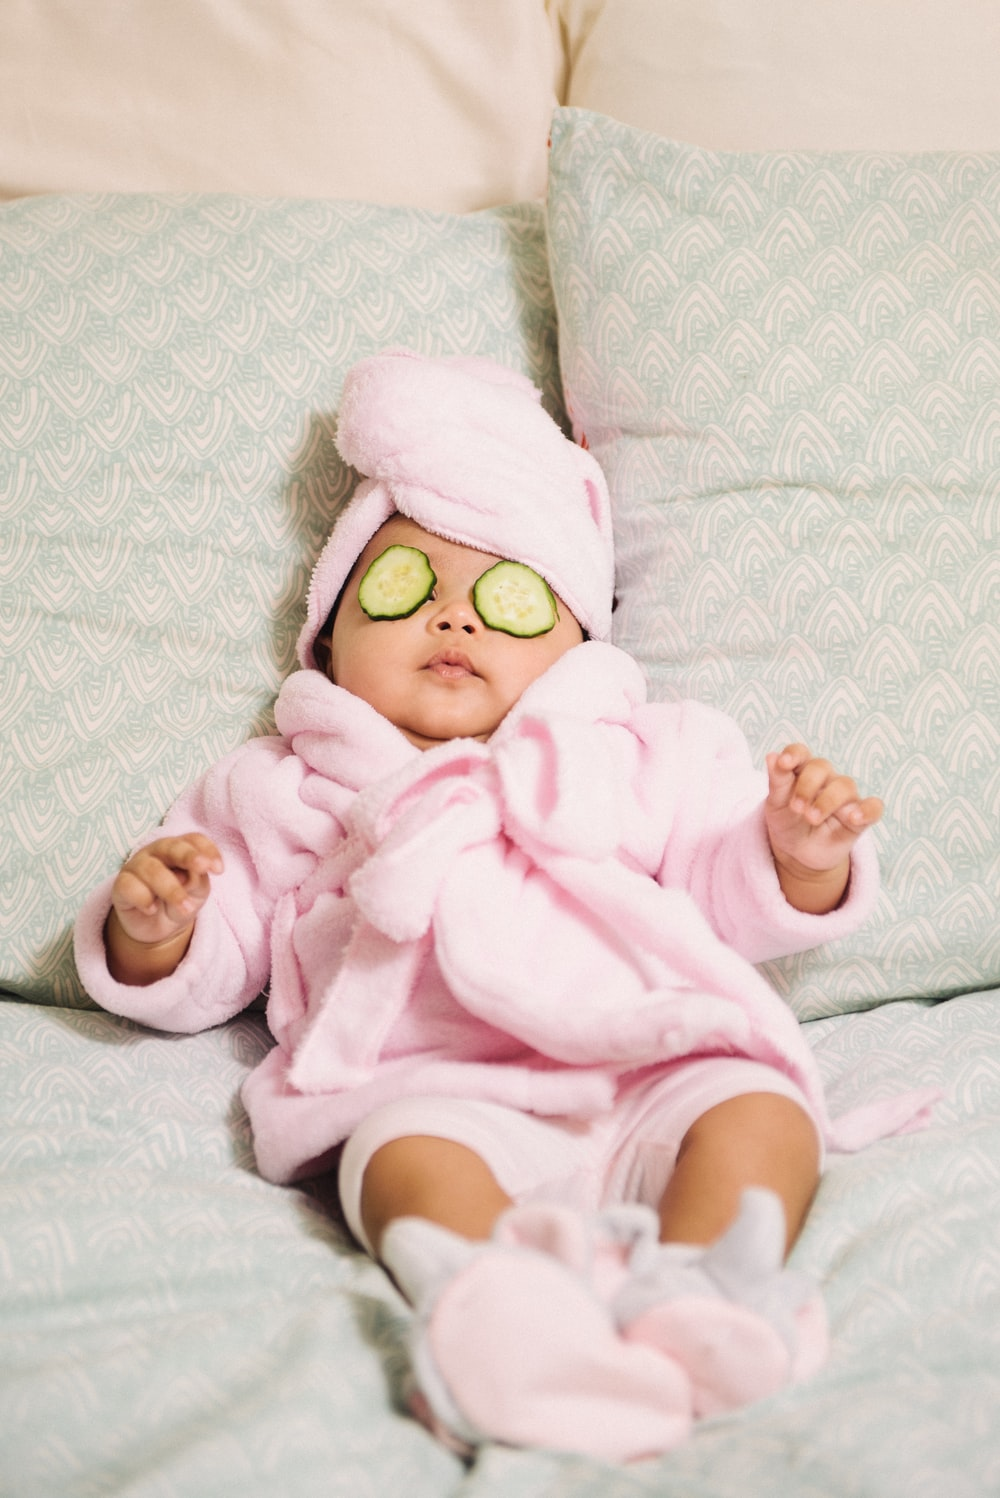 baby in pink bathrobe and towel